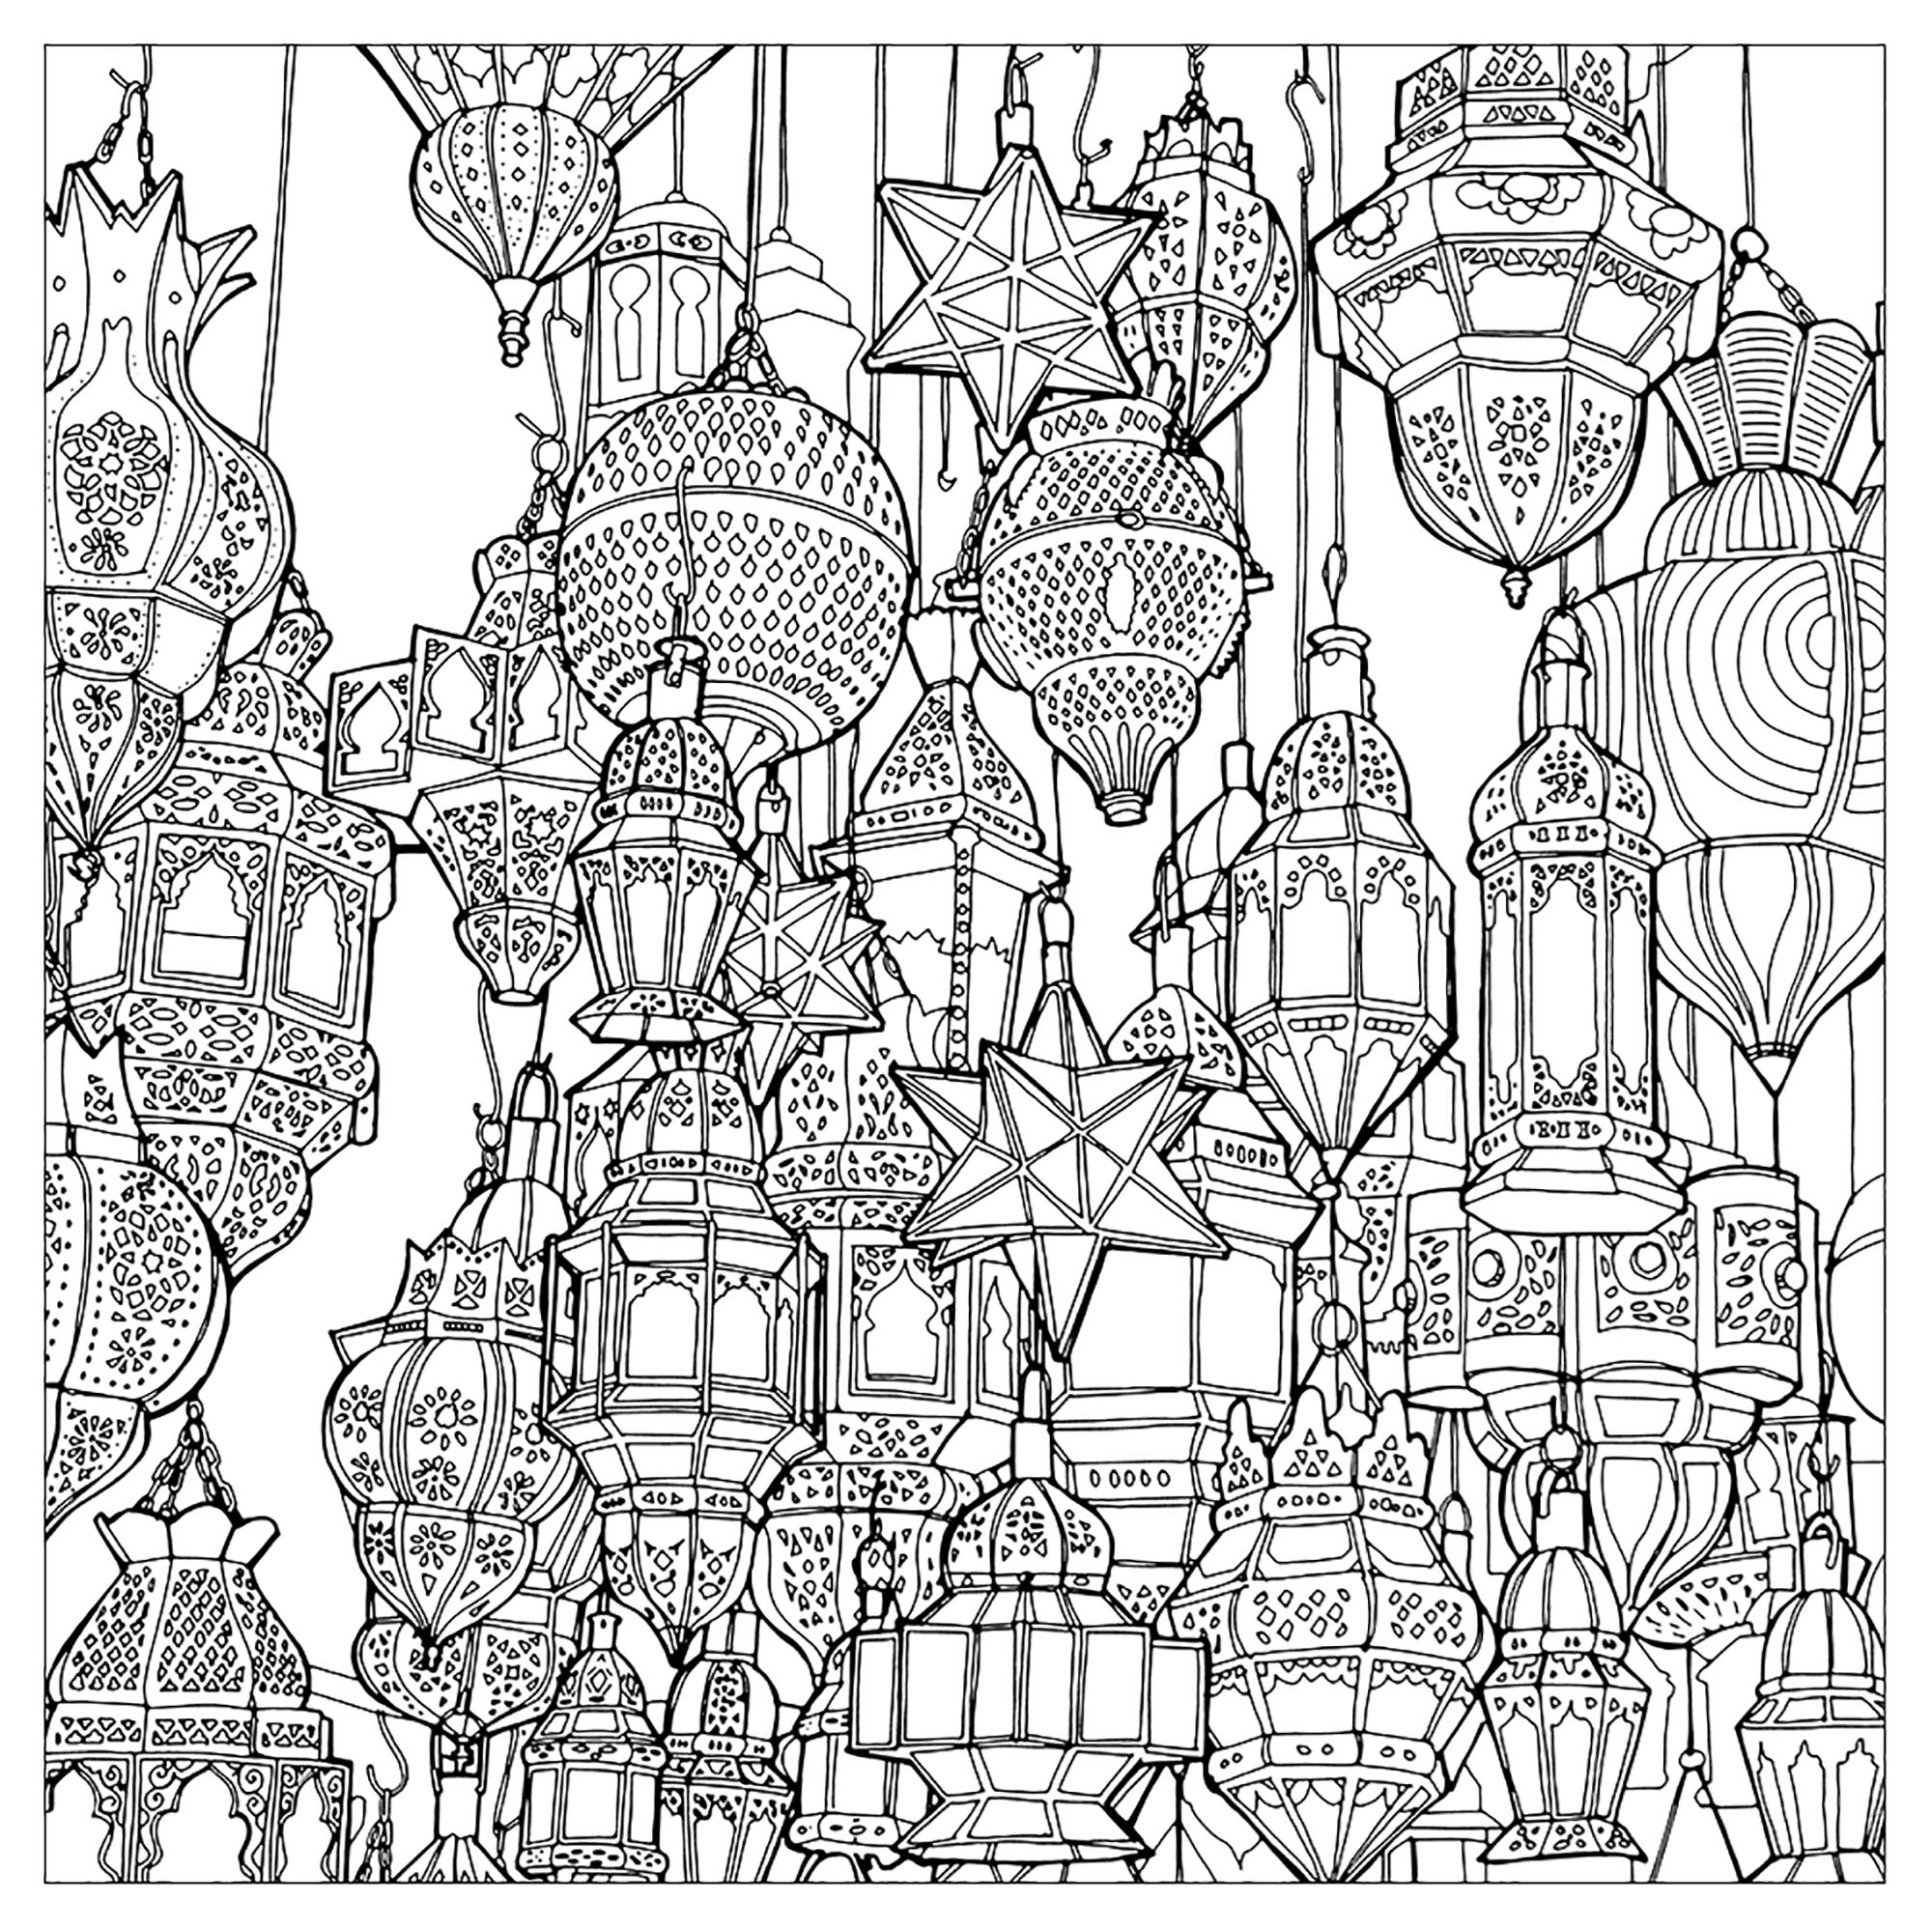 Multitude of morrocan lamps